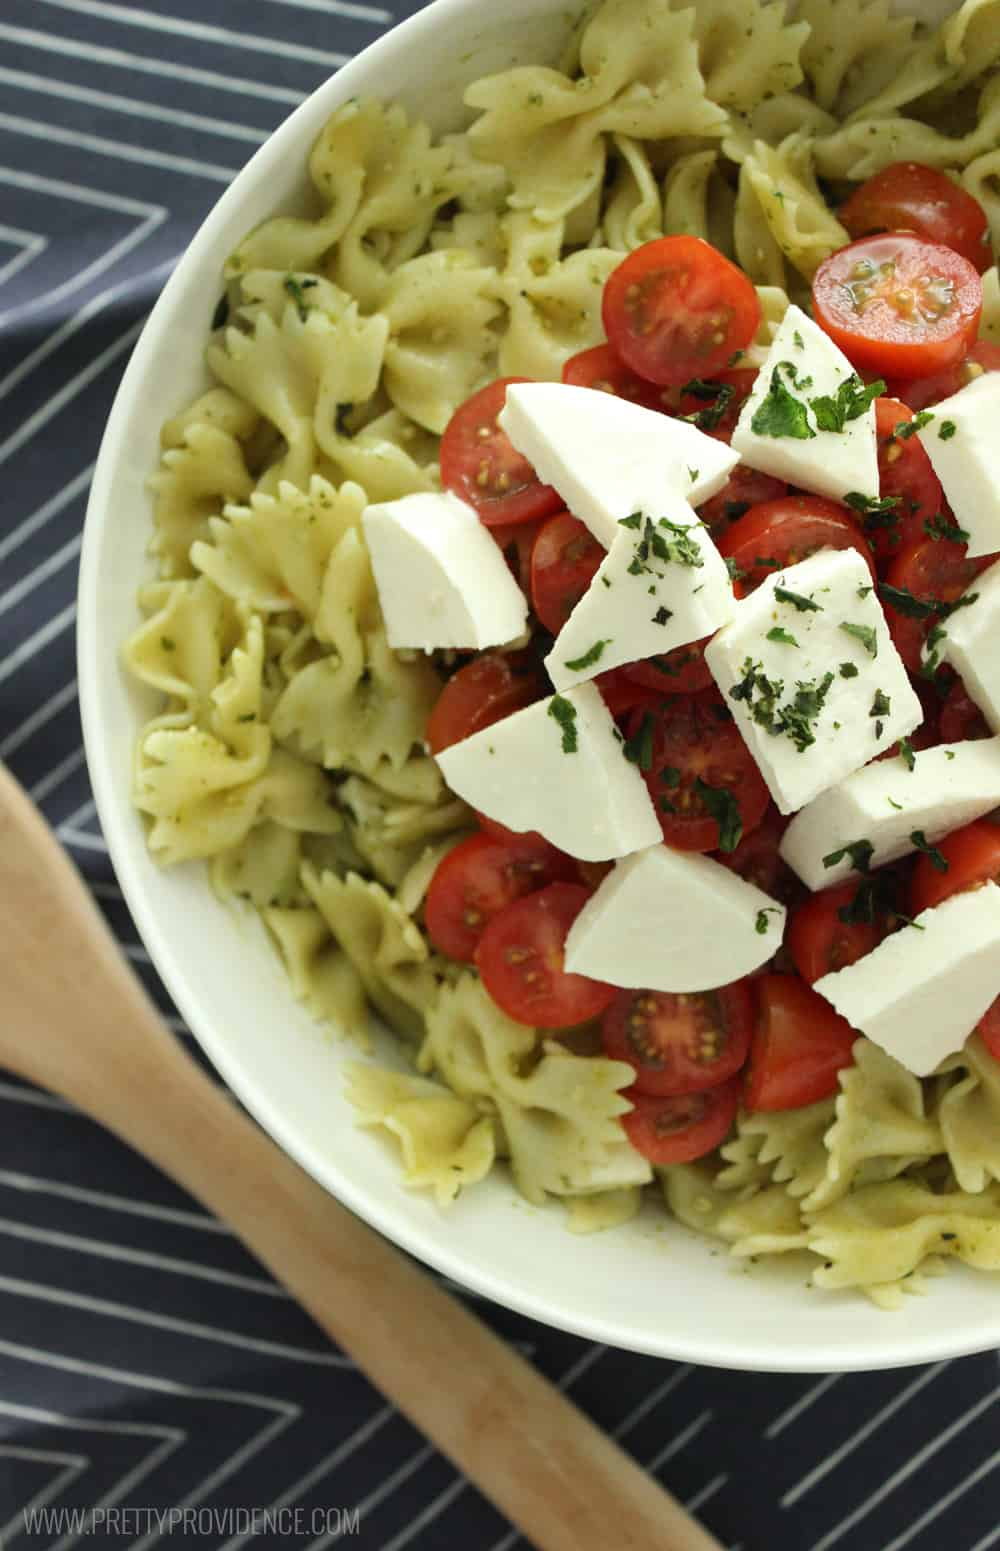 Bruschetta pasta salad! The perfect side dish for any bbq or get together! Or make a big batch and eat it all week for lunch!